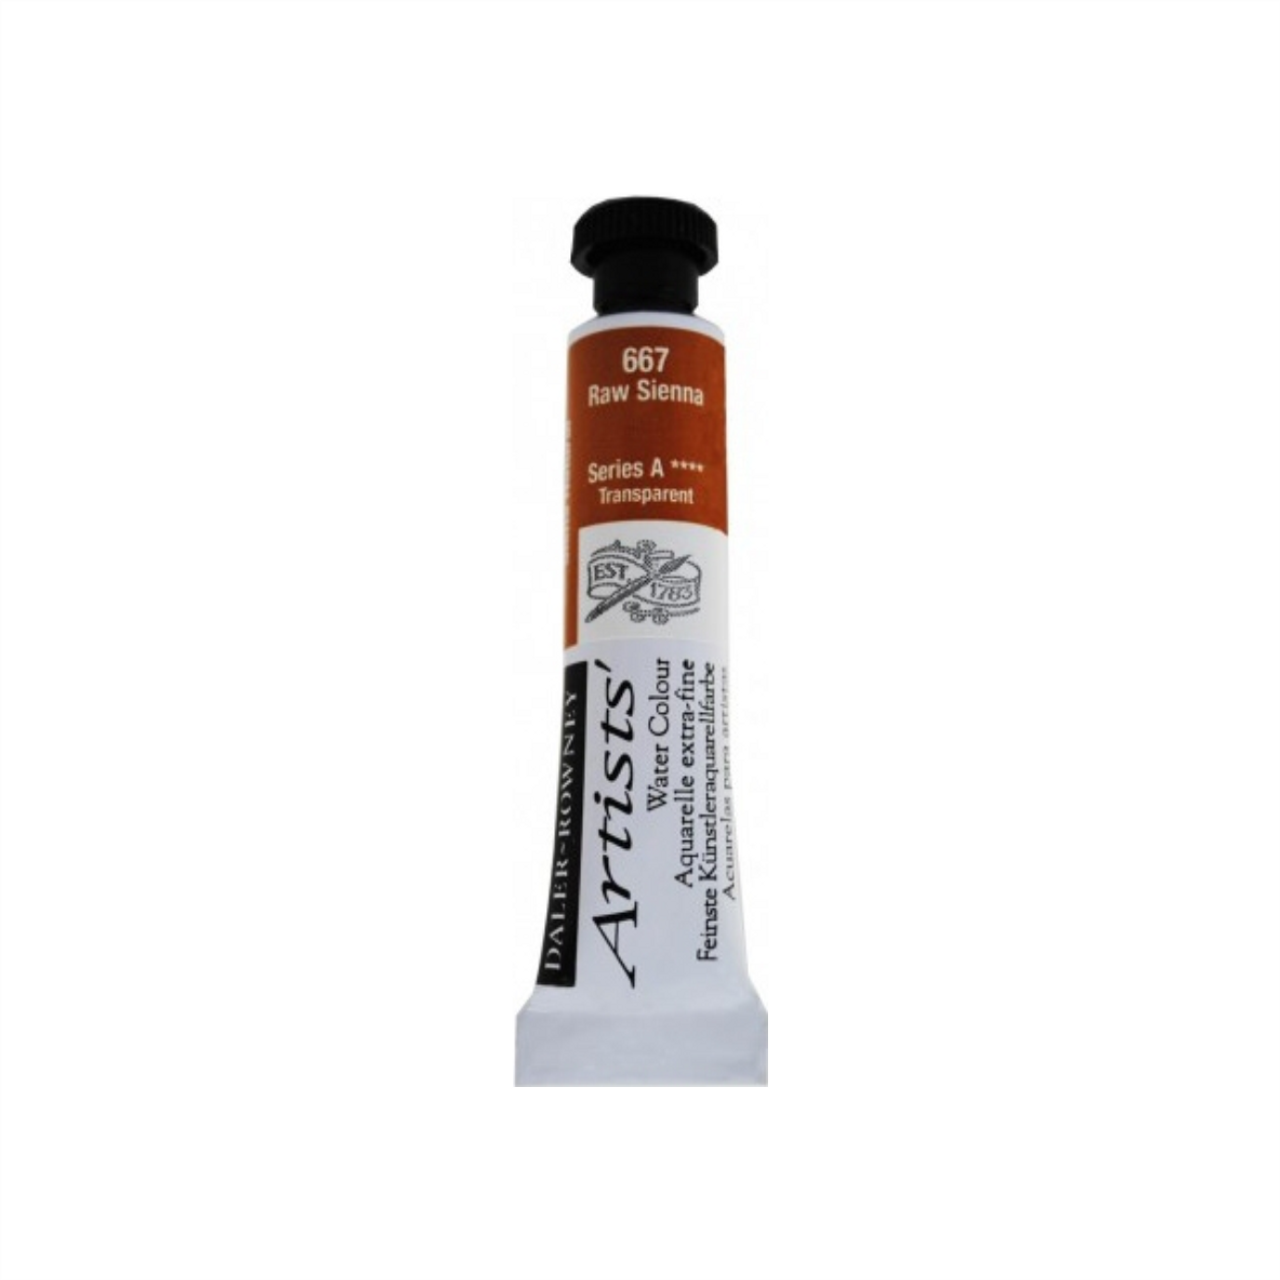 Daler-Rowney Artists' Watercolour Tube 15ml - Raw Sienna #667